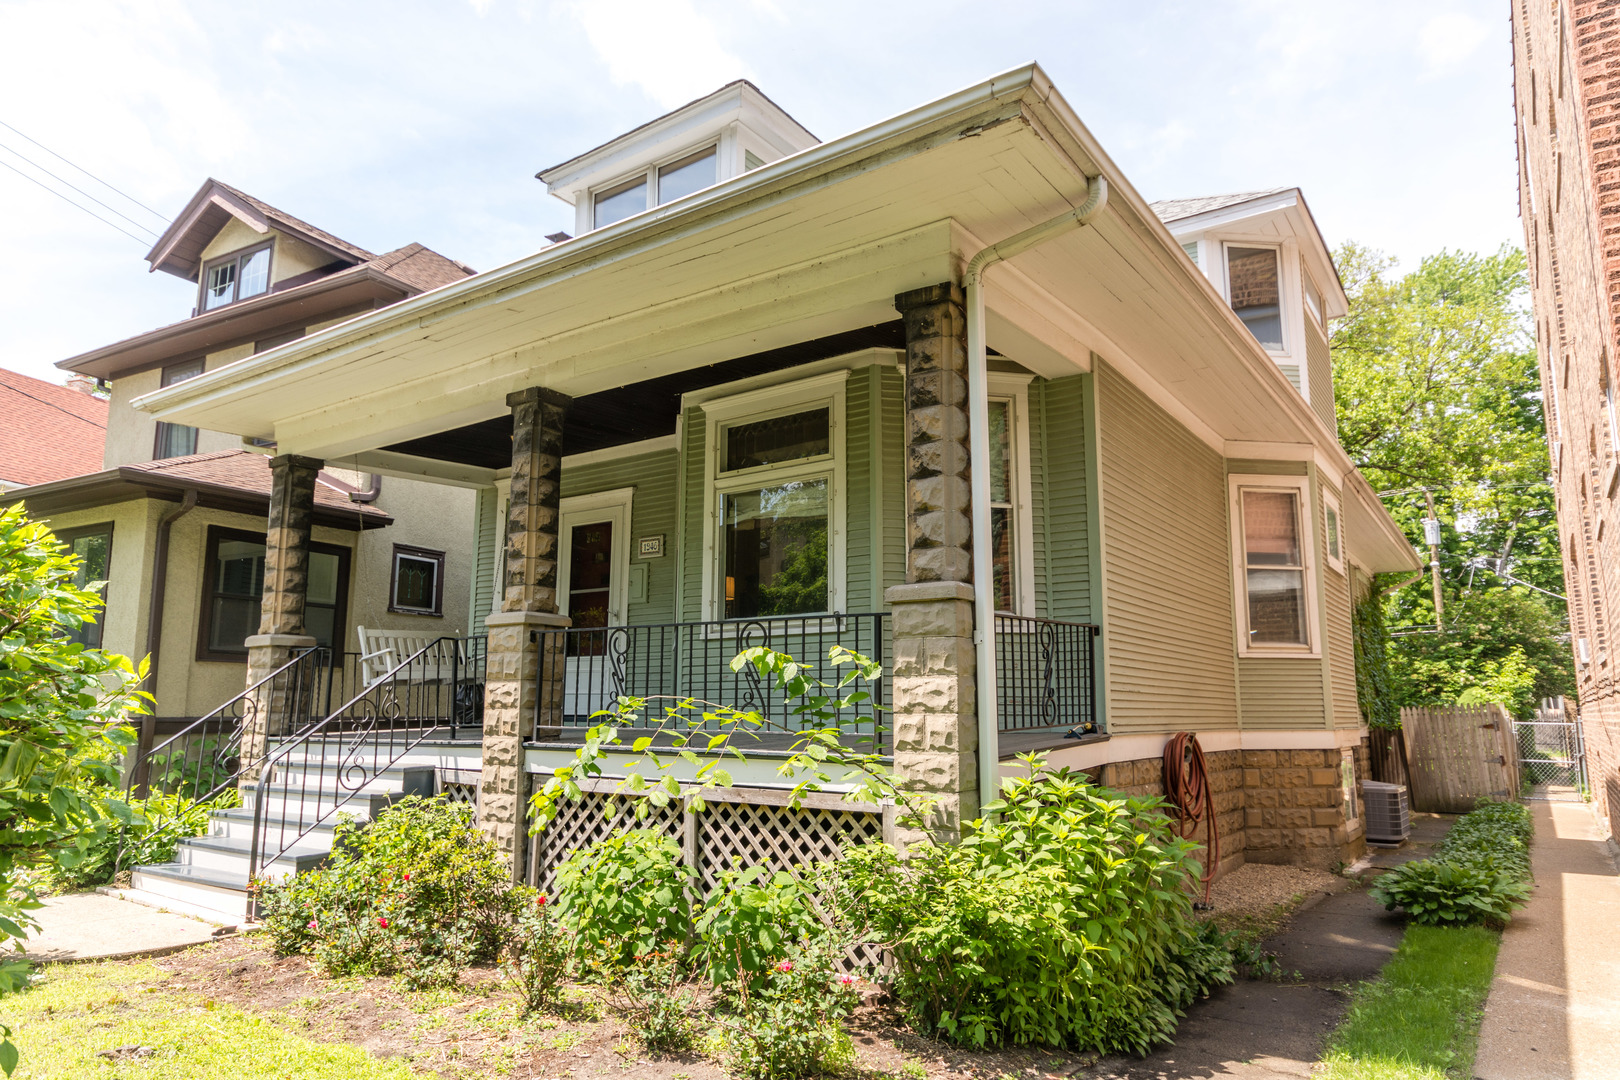 4 House in Rogers Park